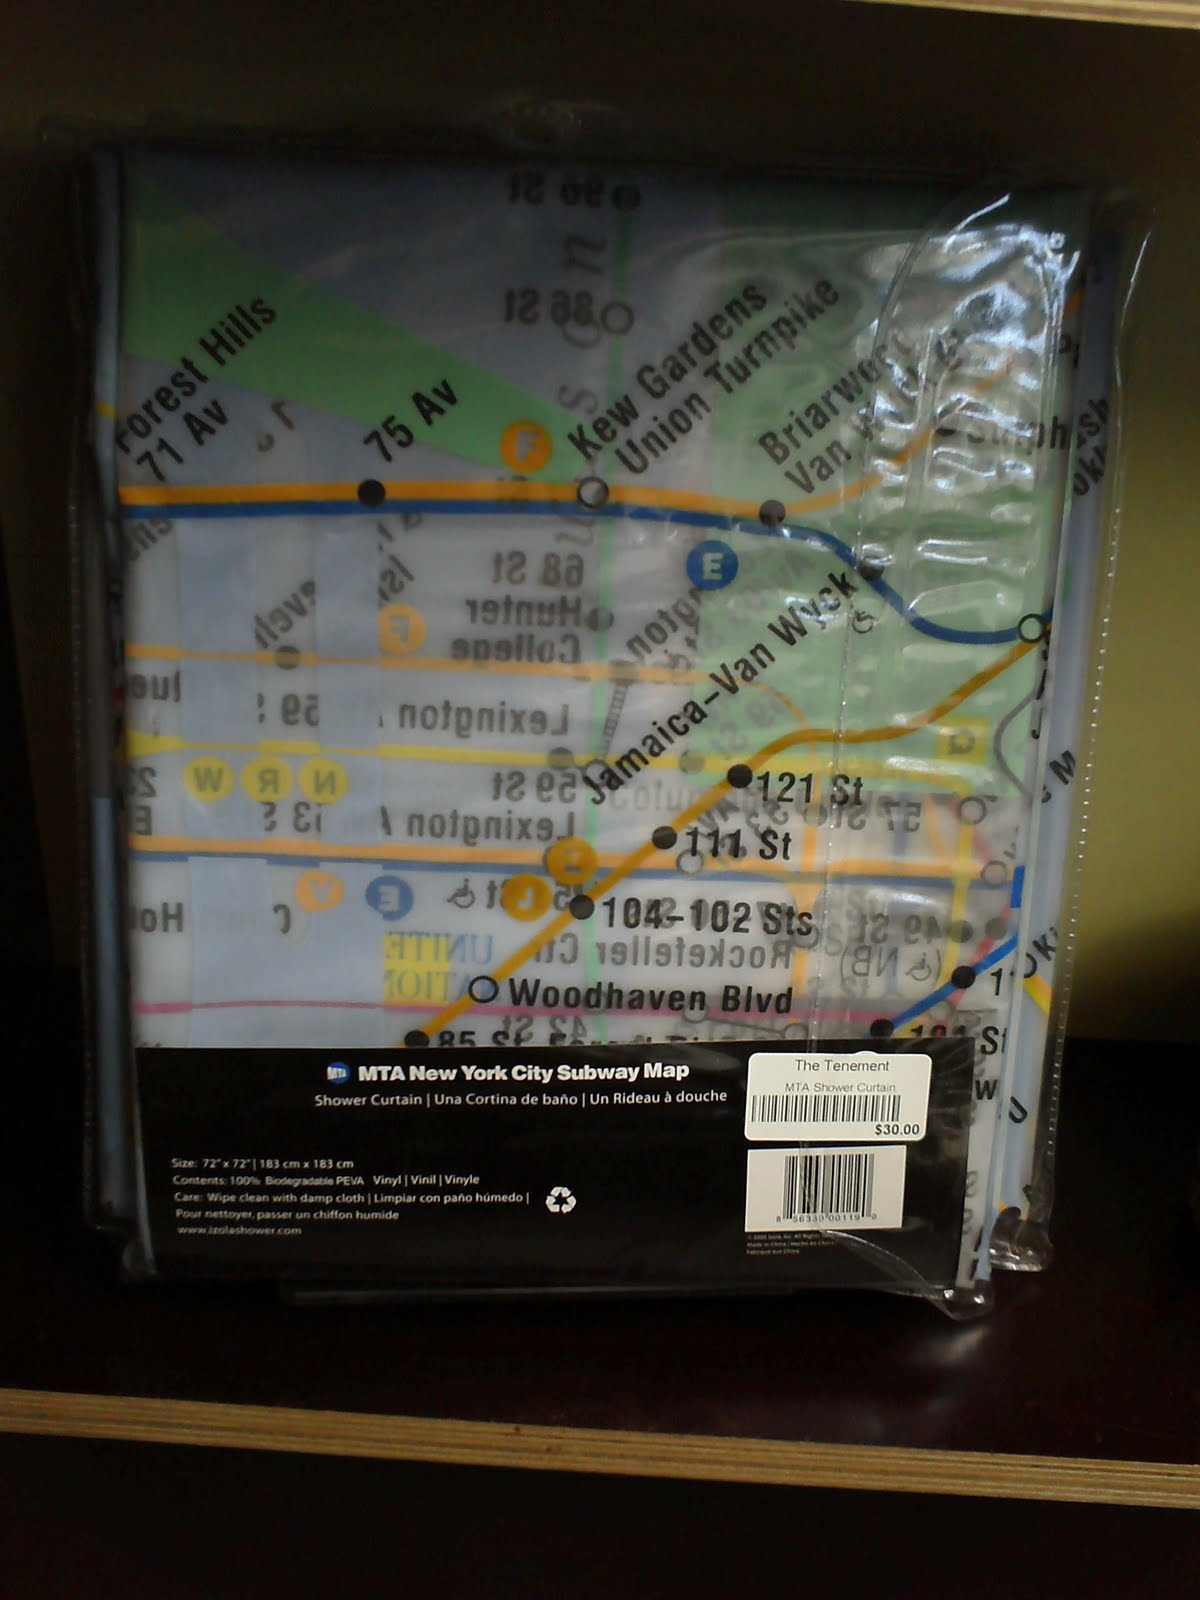 Ny Subway Map Shower Curtain.Tenement Museum Blog Featured Shop Items Subway Map Items